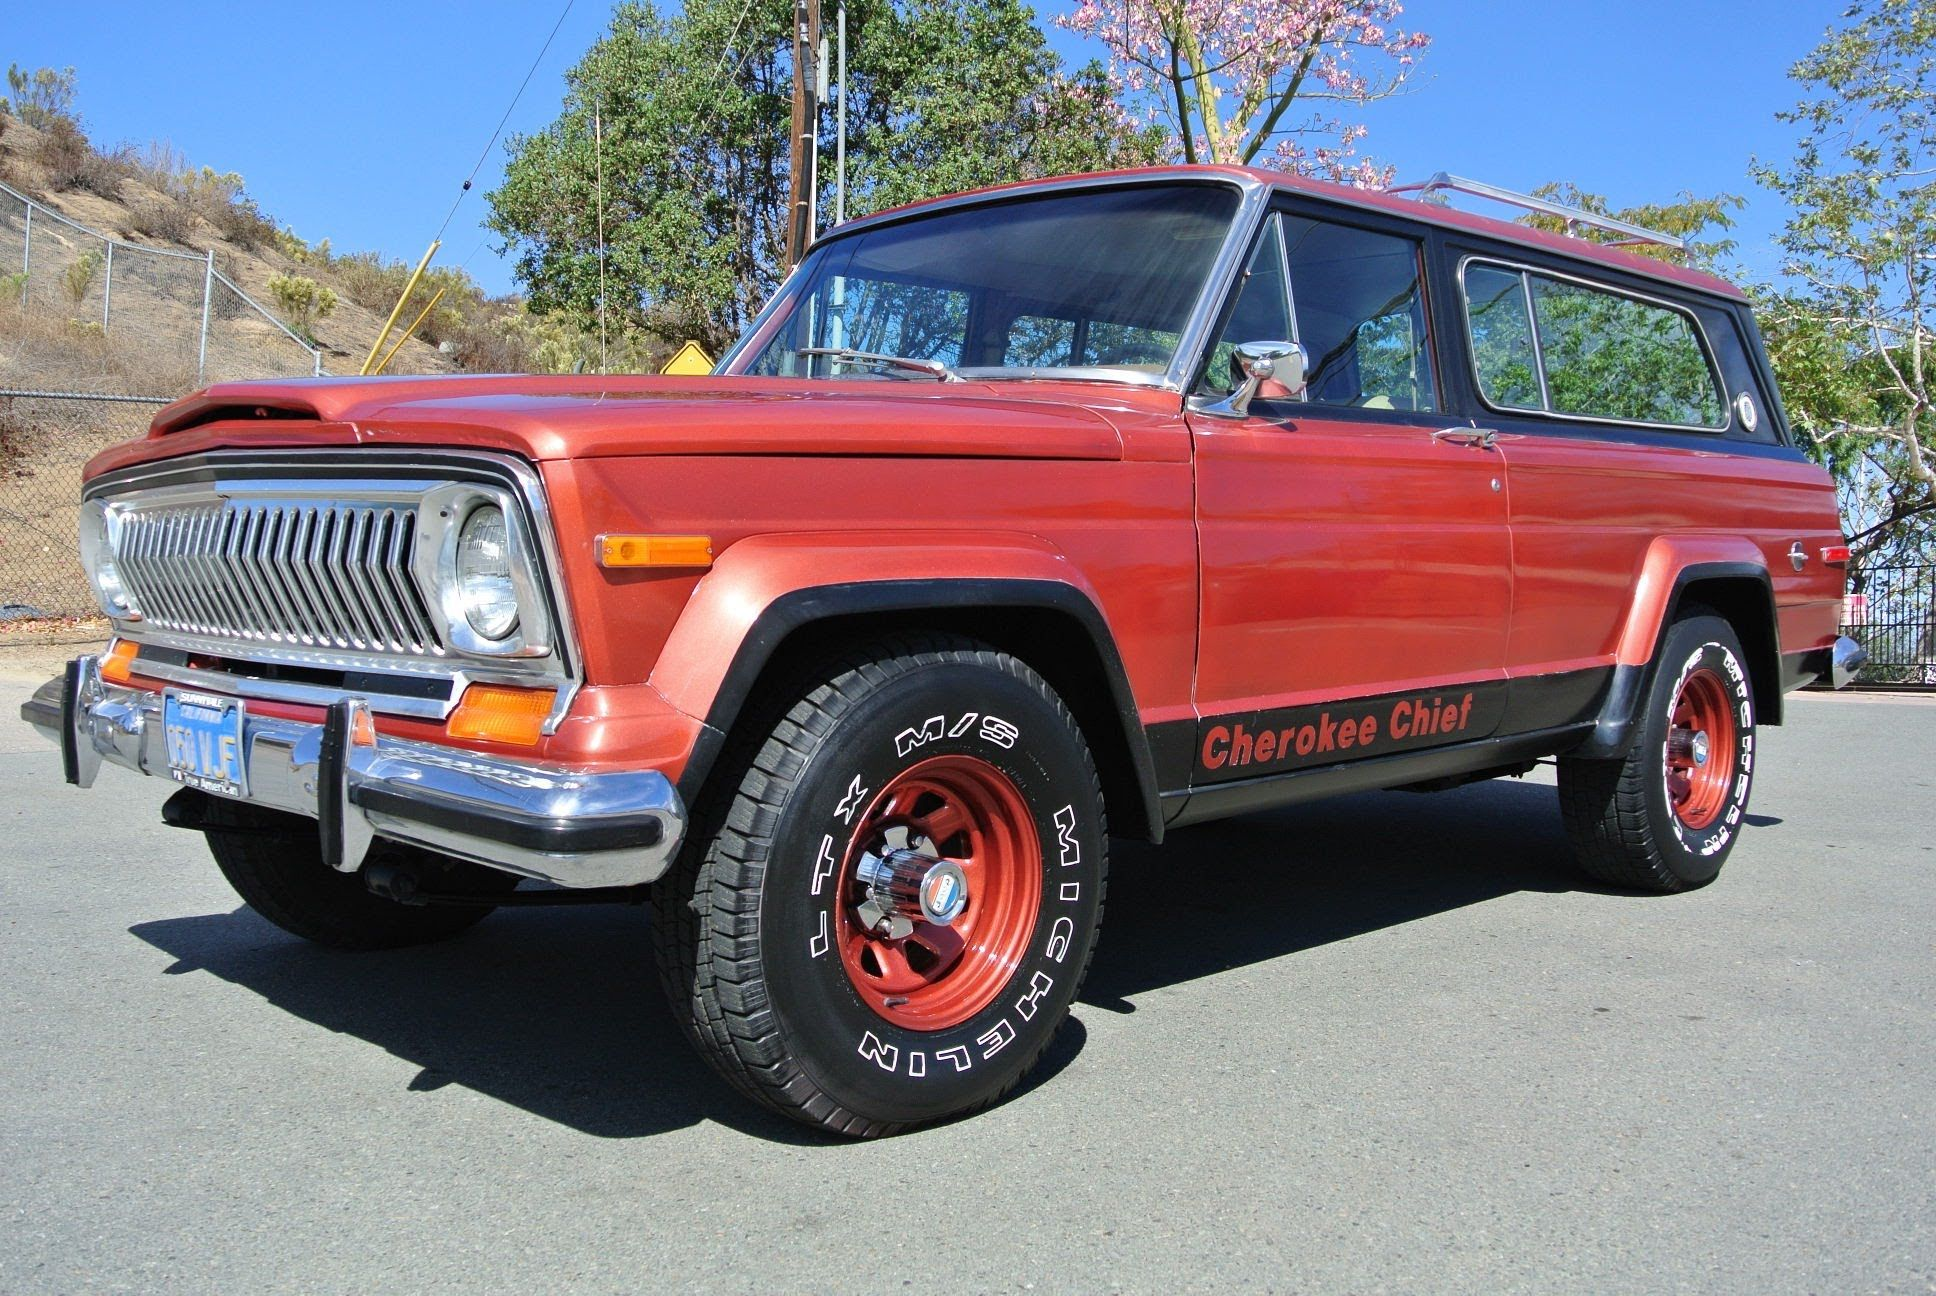 1978 Jeep Cherokee Chief S Levi Edition Jeep Cherokee Willys Jeep Jeep